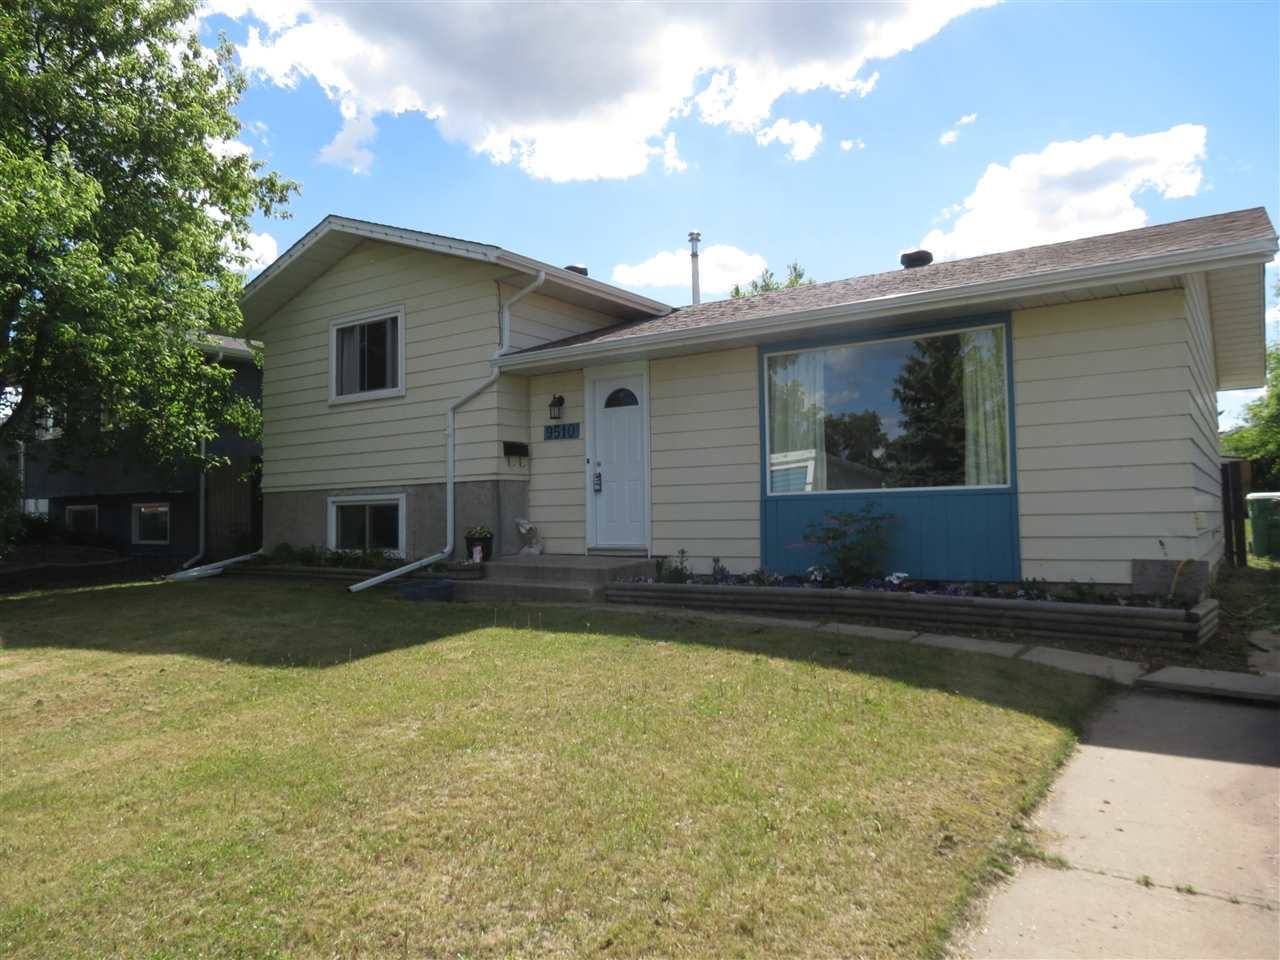 Photo 2: 9510 97 Street: Morinville House for sale : MLS® # E4067875